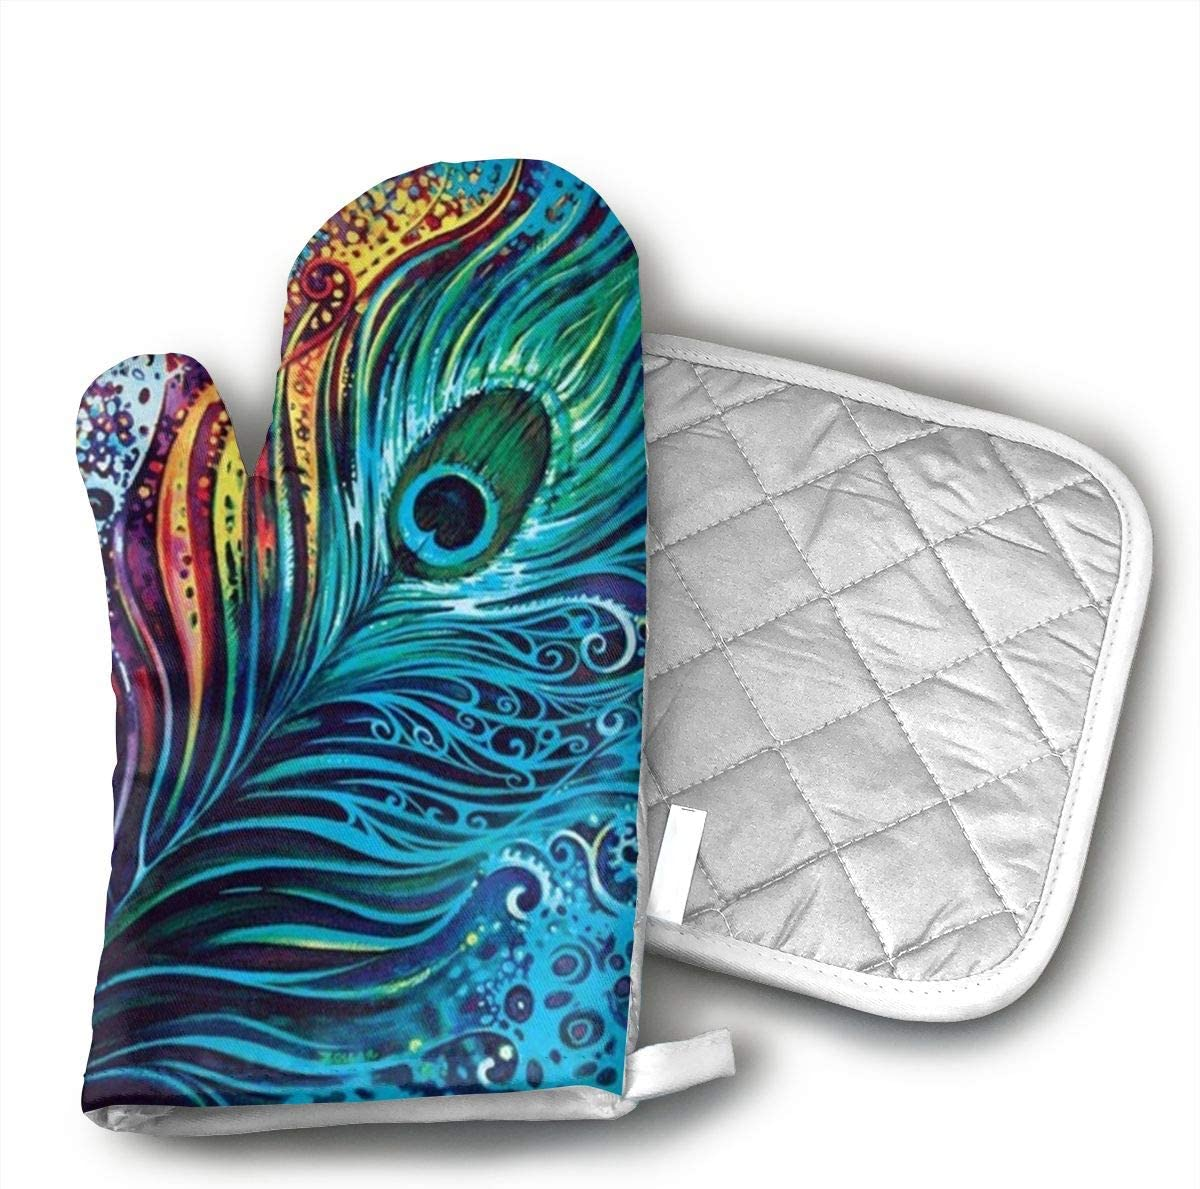 JFNNRUOP Amazing Peacock Oven Mitts,with Potholders Oven Gloves,Insulated Quilted Cotton Potholders